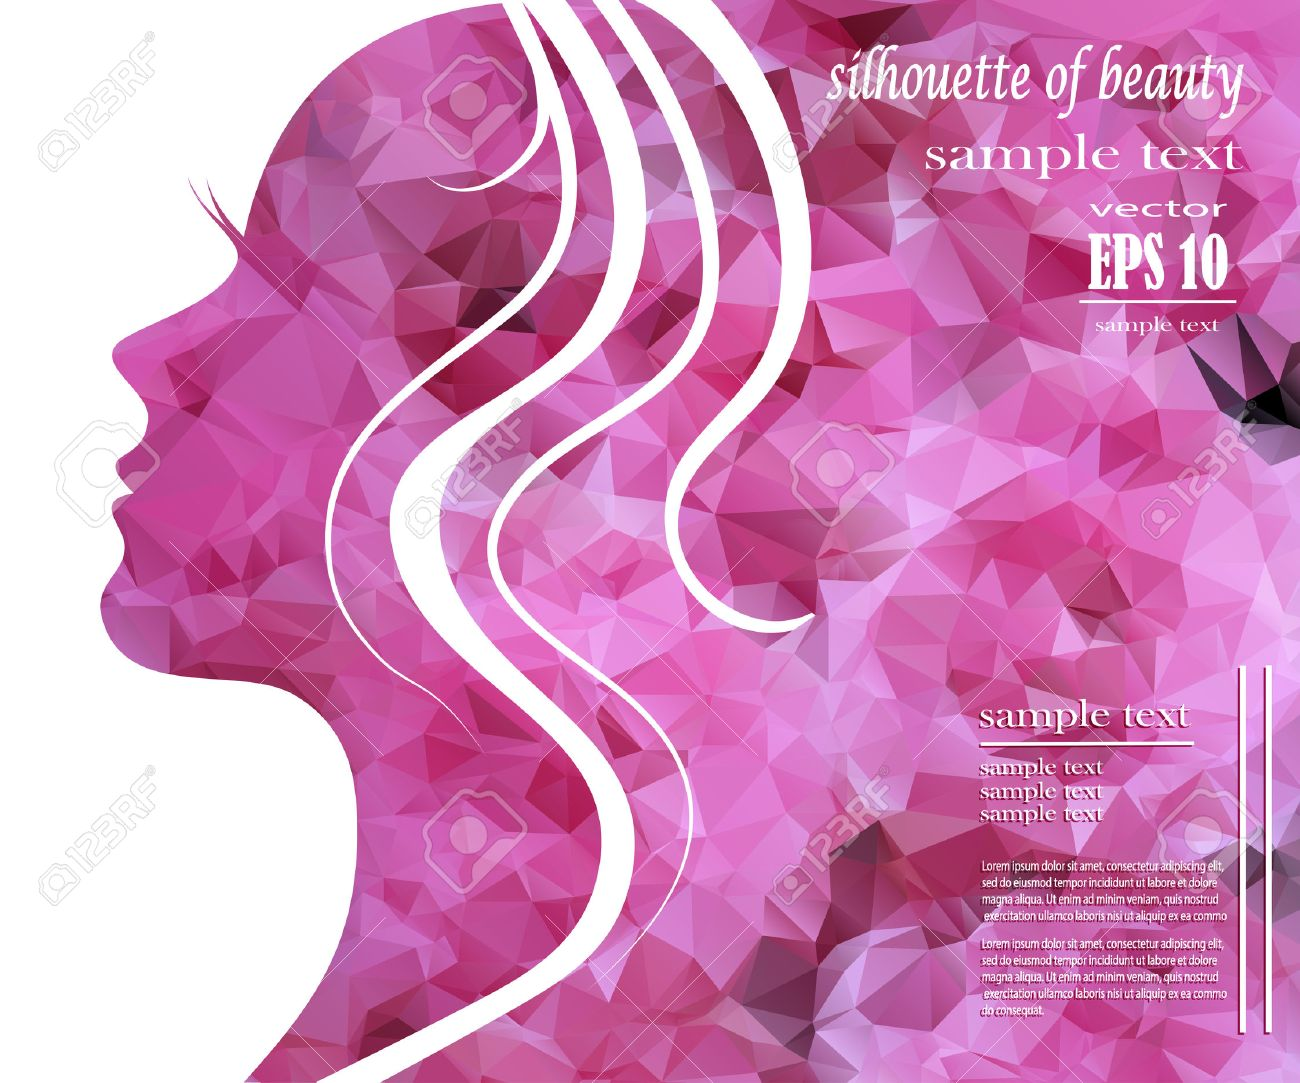 Beautiful girl silhouette with colorful hair, vector background. Abstract design concept for beauty salon, spa, cosmetic shop, flyer, brochure, cover, banner, placard. - 38162251